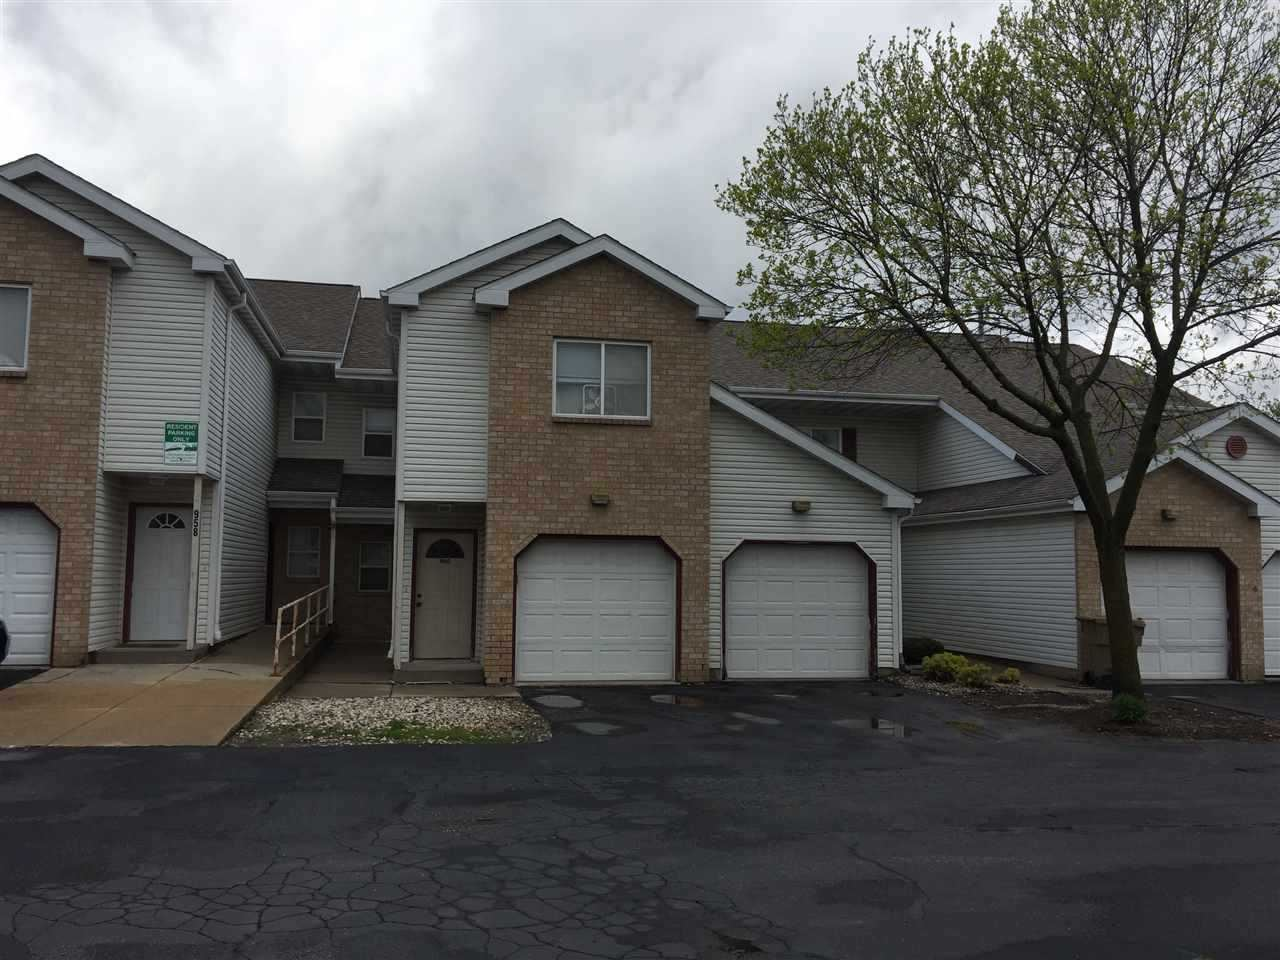 966 Rockefeller Ln, Madison, WI 53704 - #: 1905758